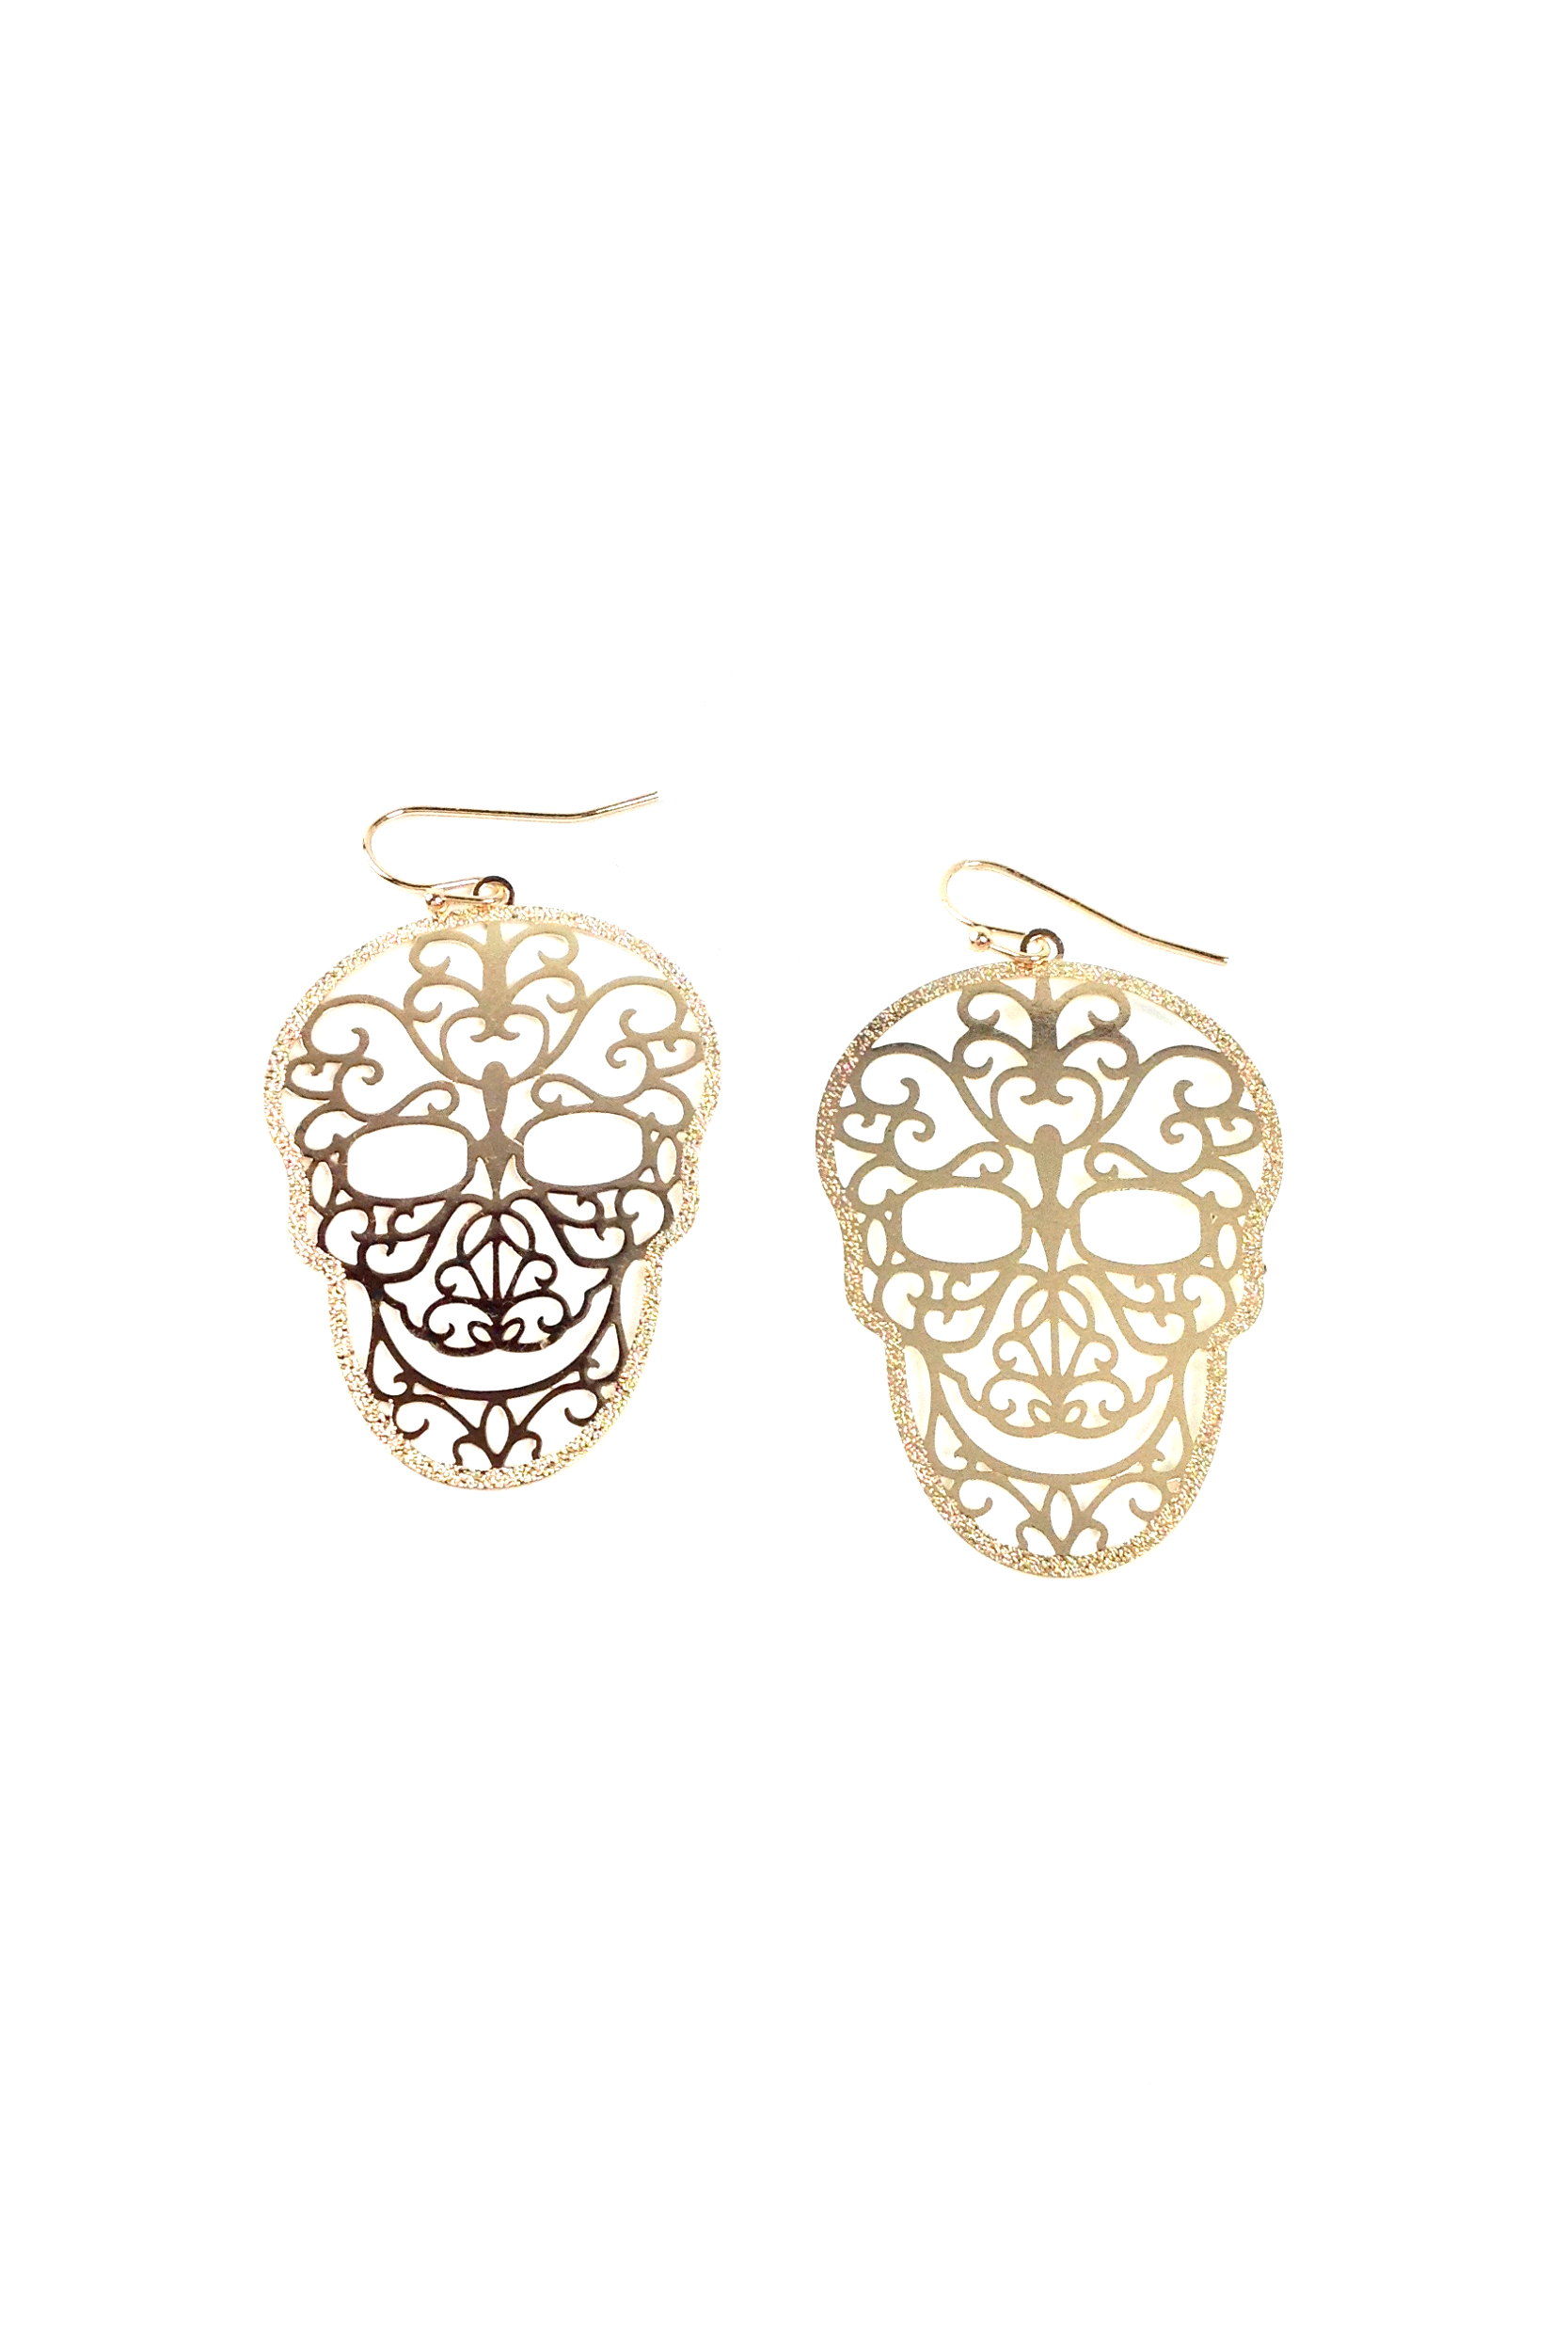 filigree ratings range henna reviews out ehf calyx earrings based on user of